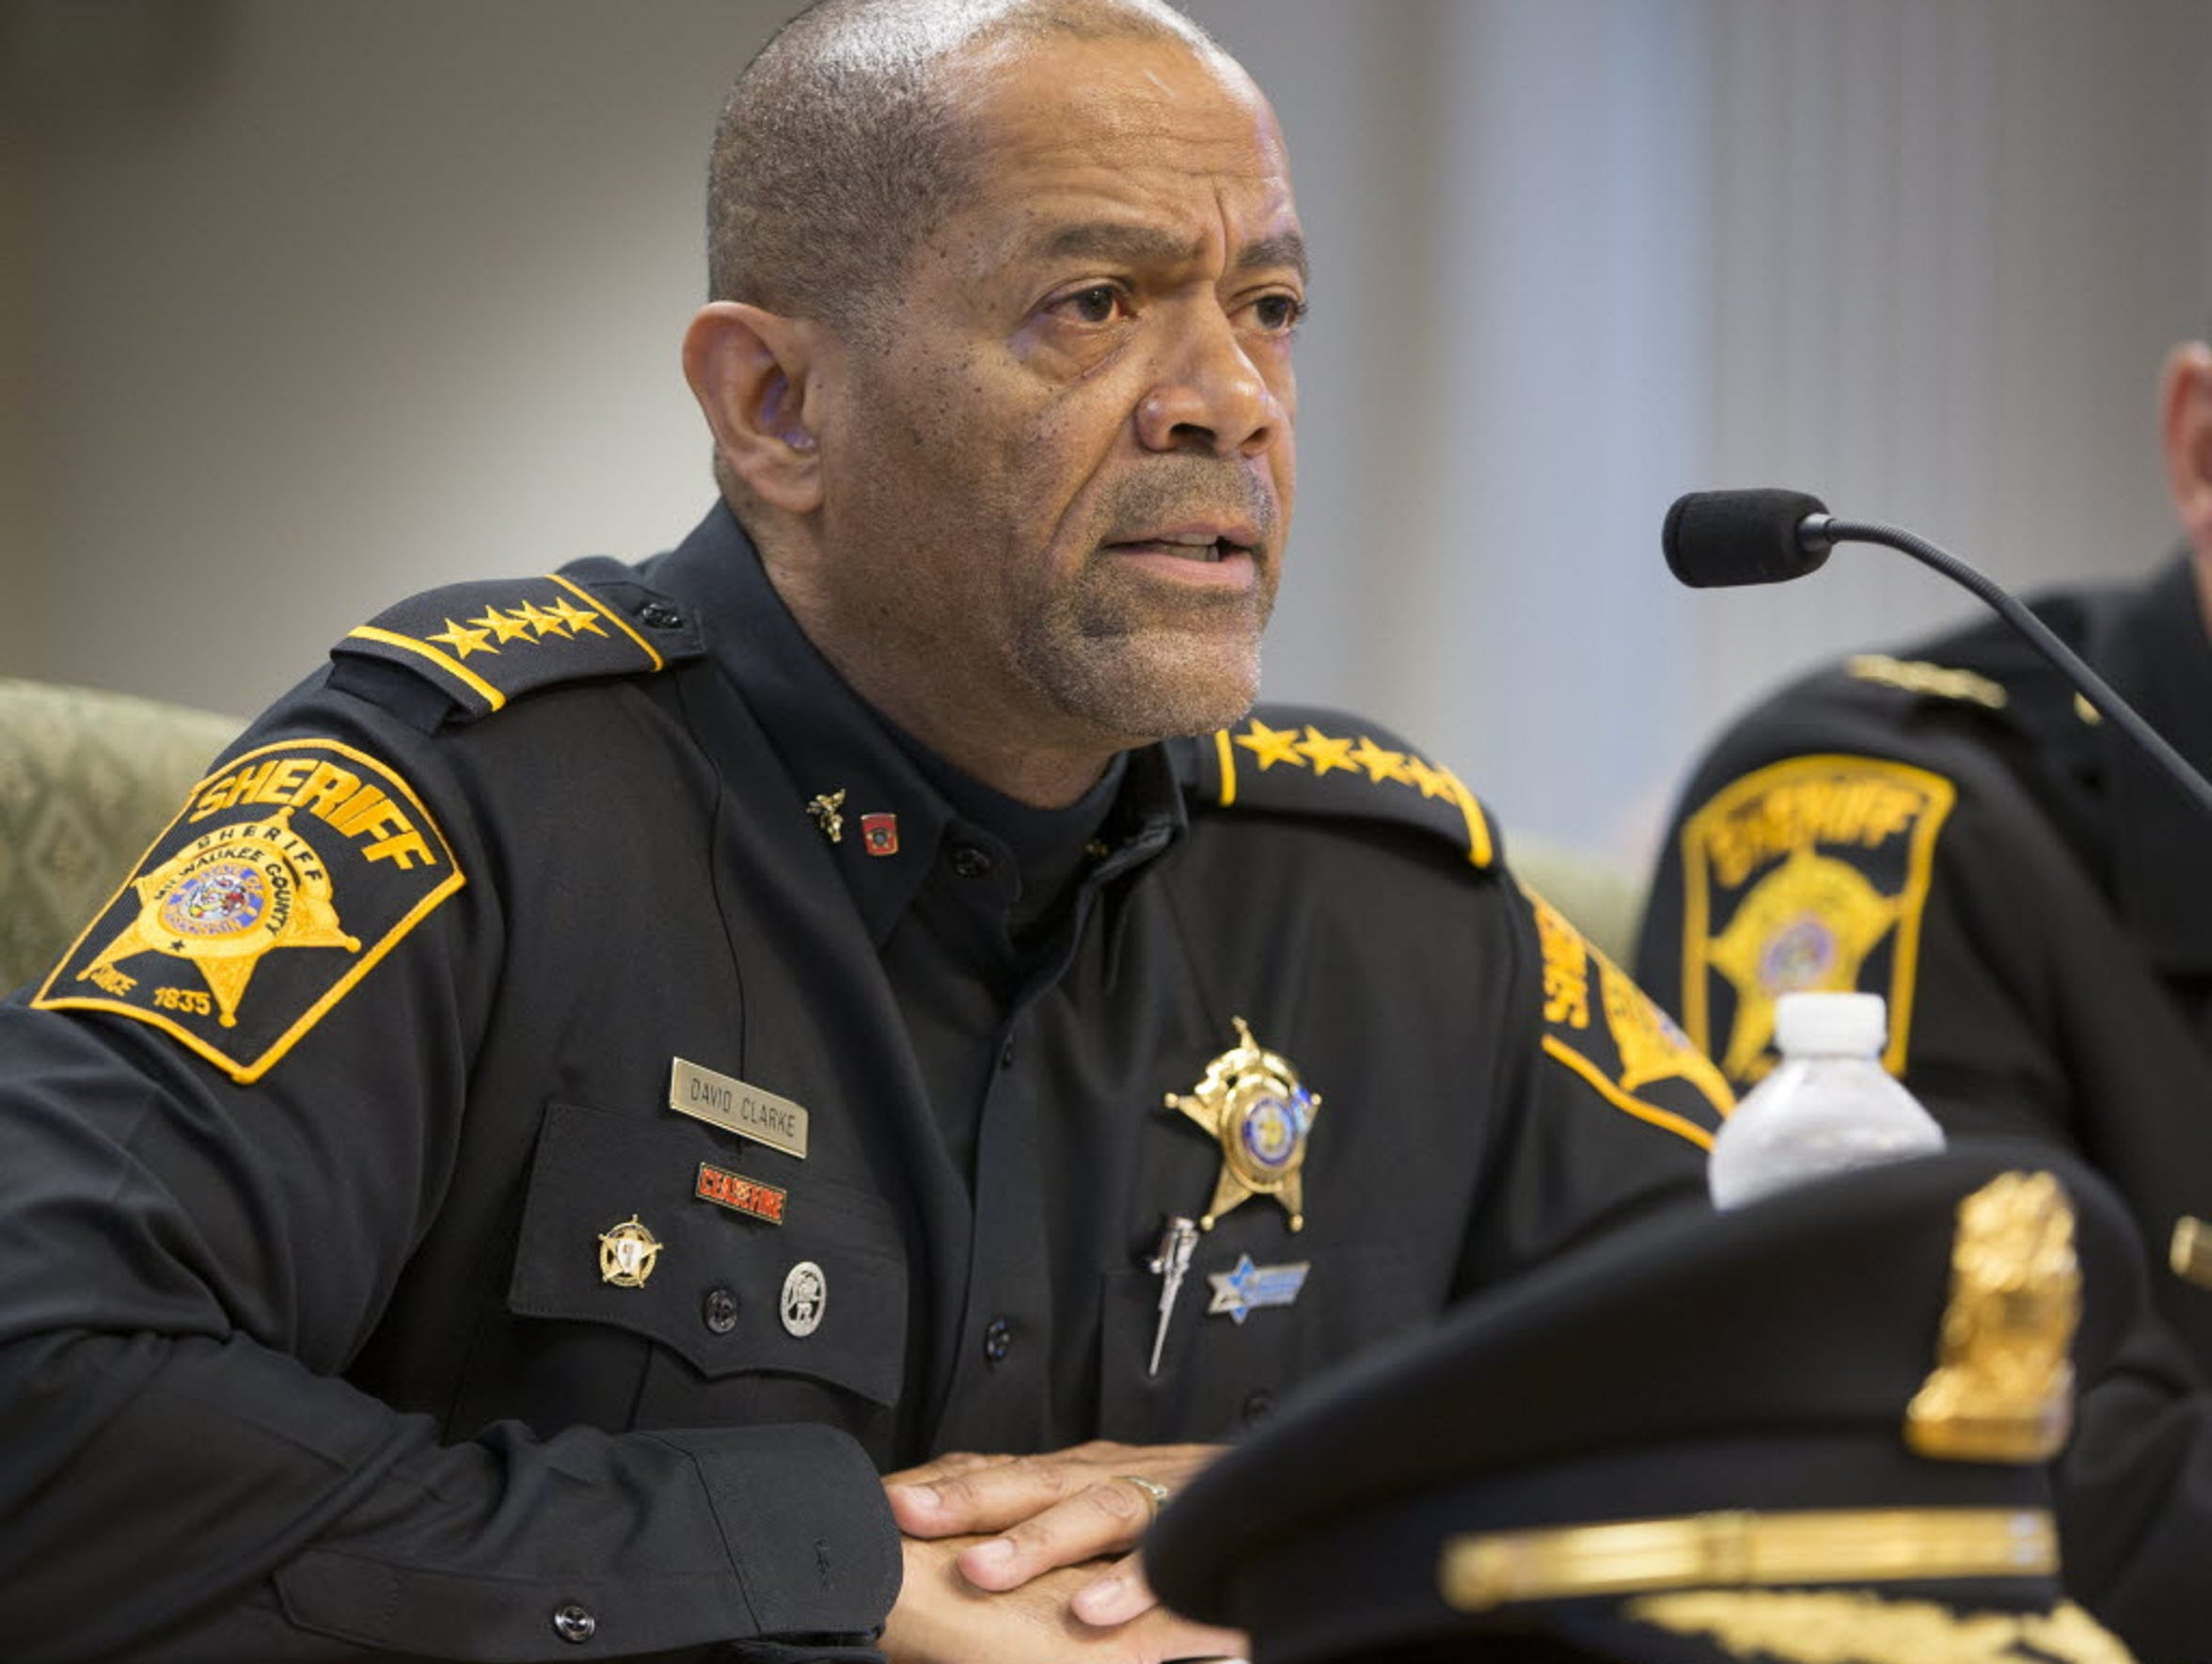 Former Milwaukee County Sheriff David Clarke clashed